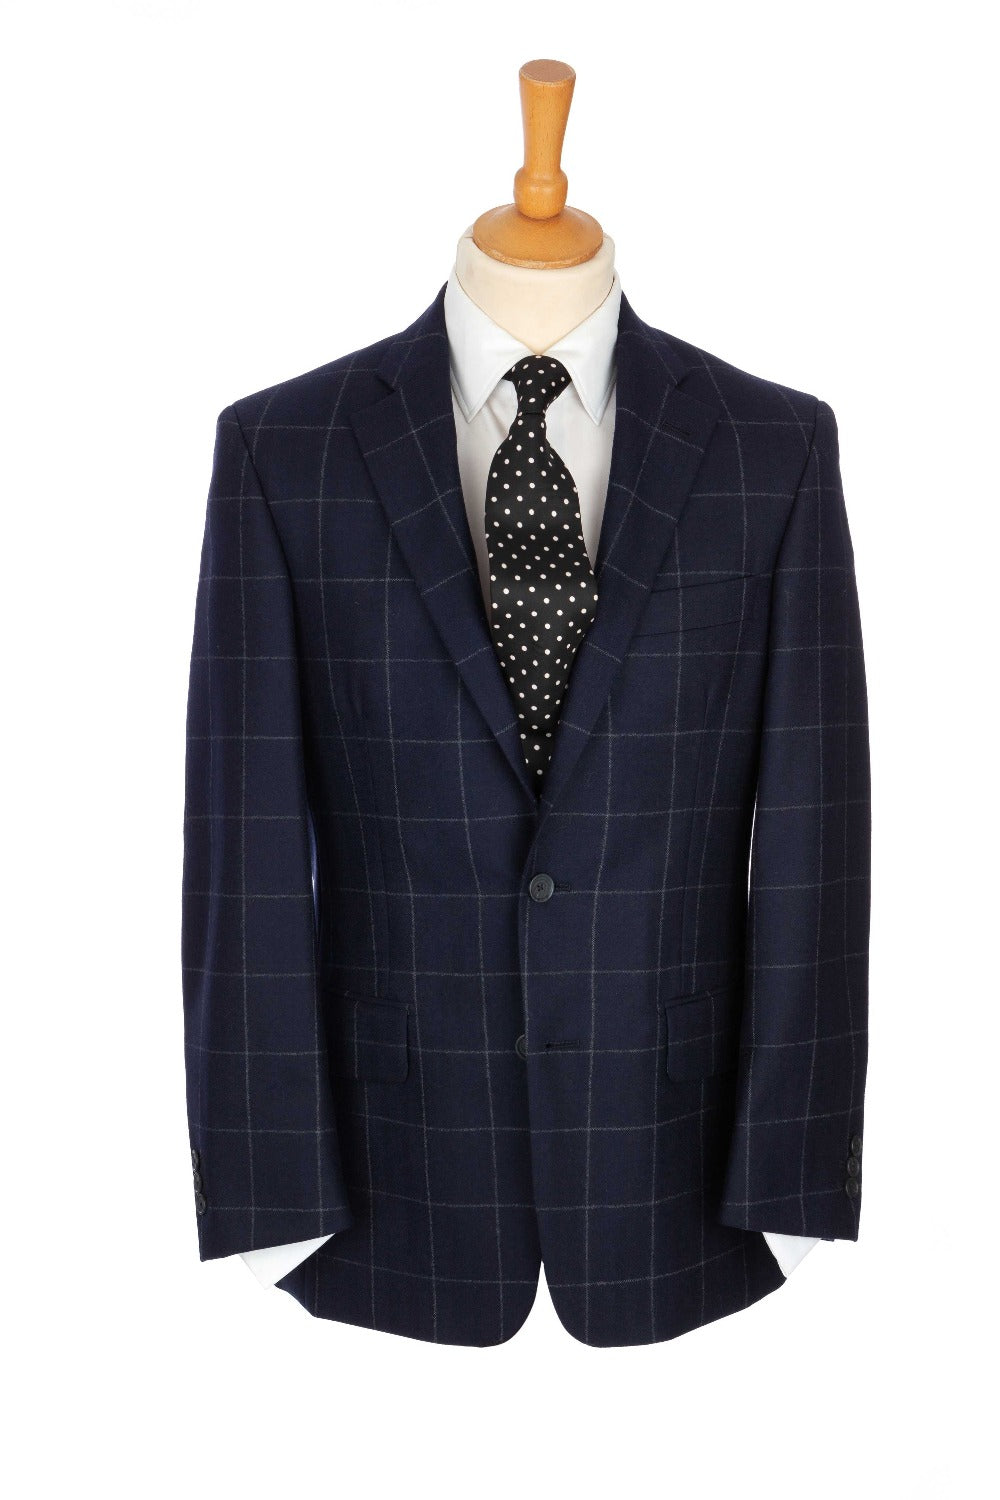 Regent Jacket - 'The Island' - Navy w/ Grey Check - Regent Tailoring